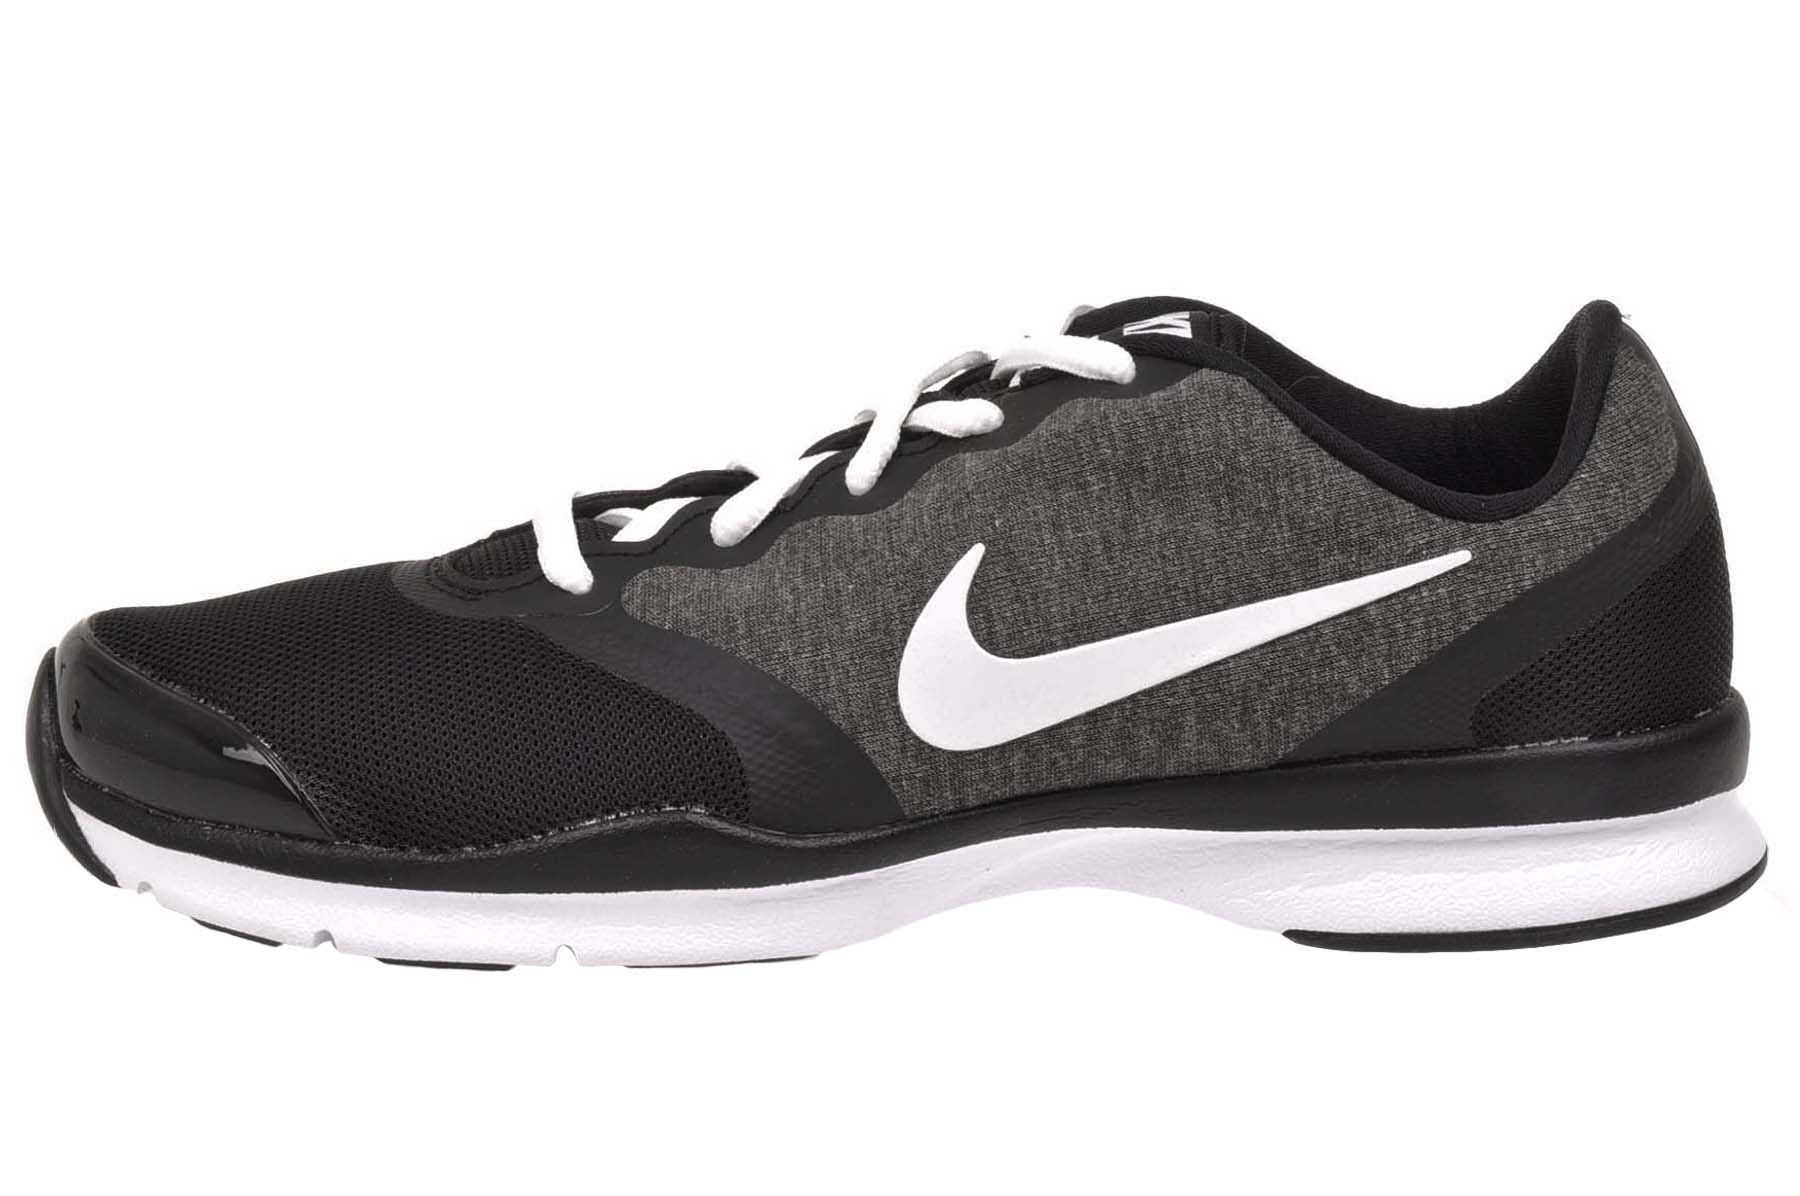 "e1ffd3e60b80c 22 thoughts on "" differences between a few nike running shoes "" Lan says   August 3"